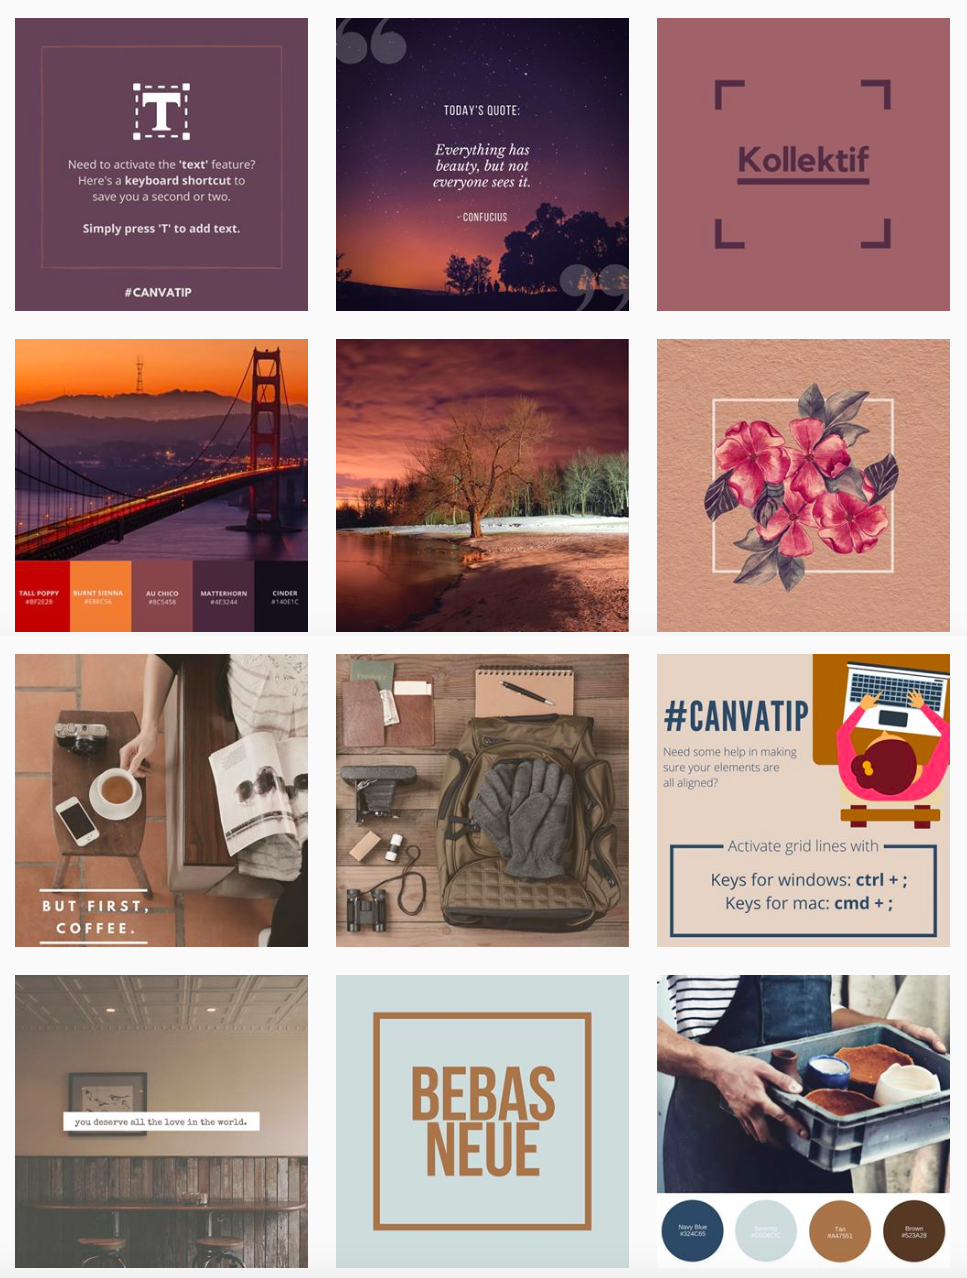 Canva Instagram feed example for your strategy on Instagram